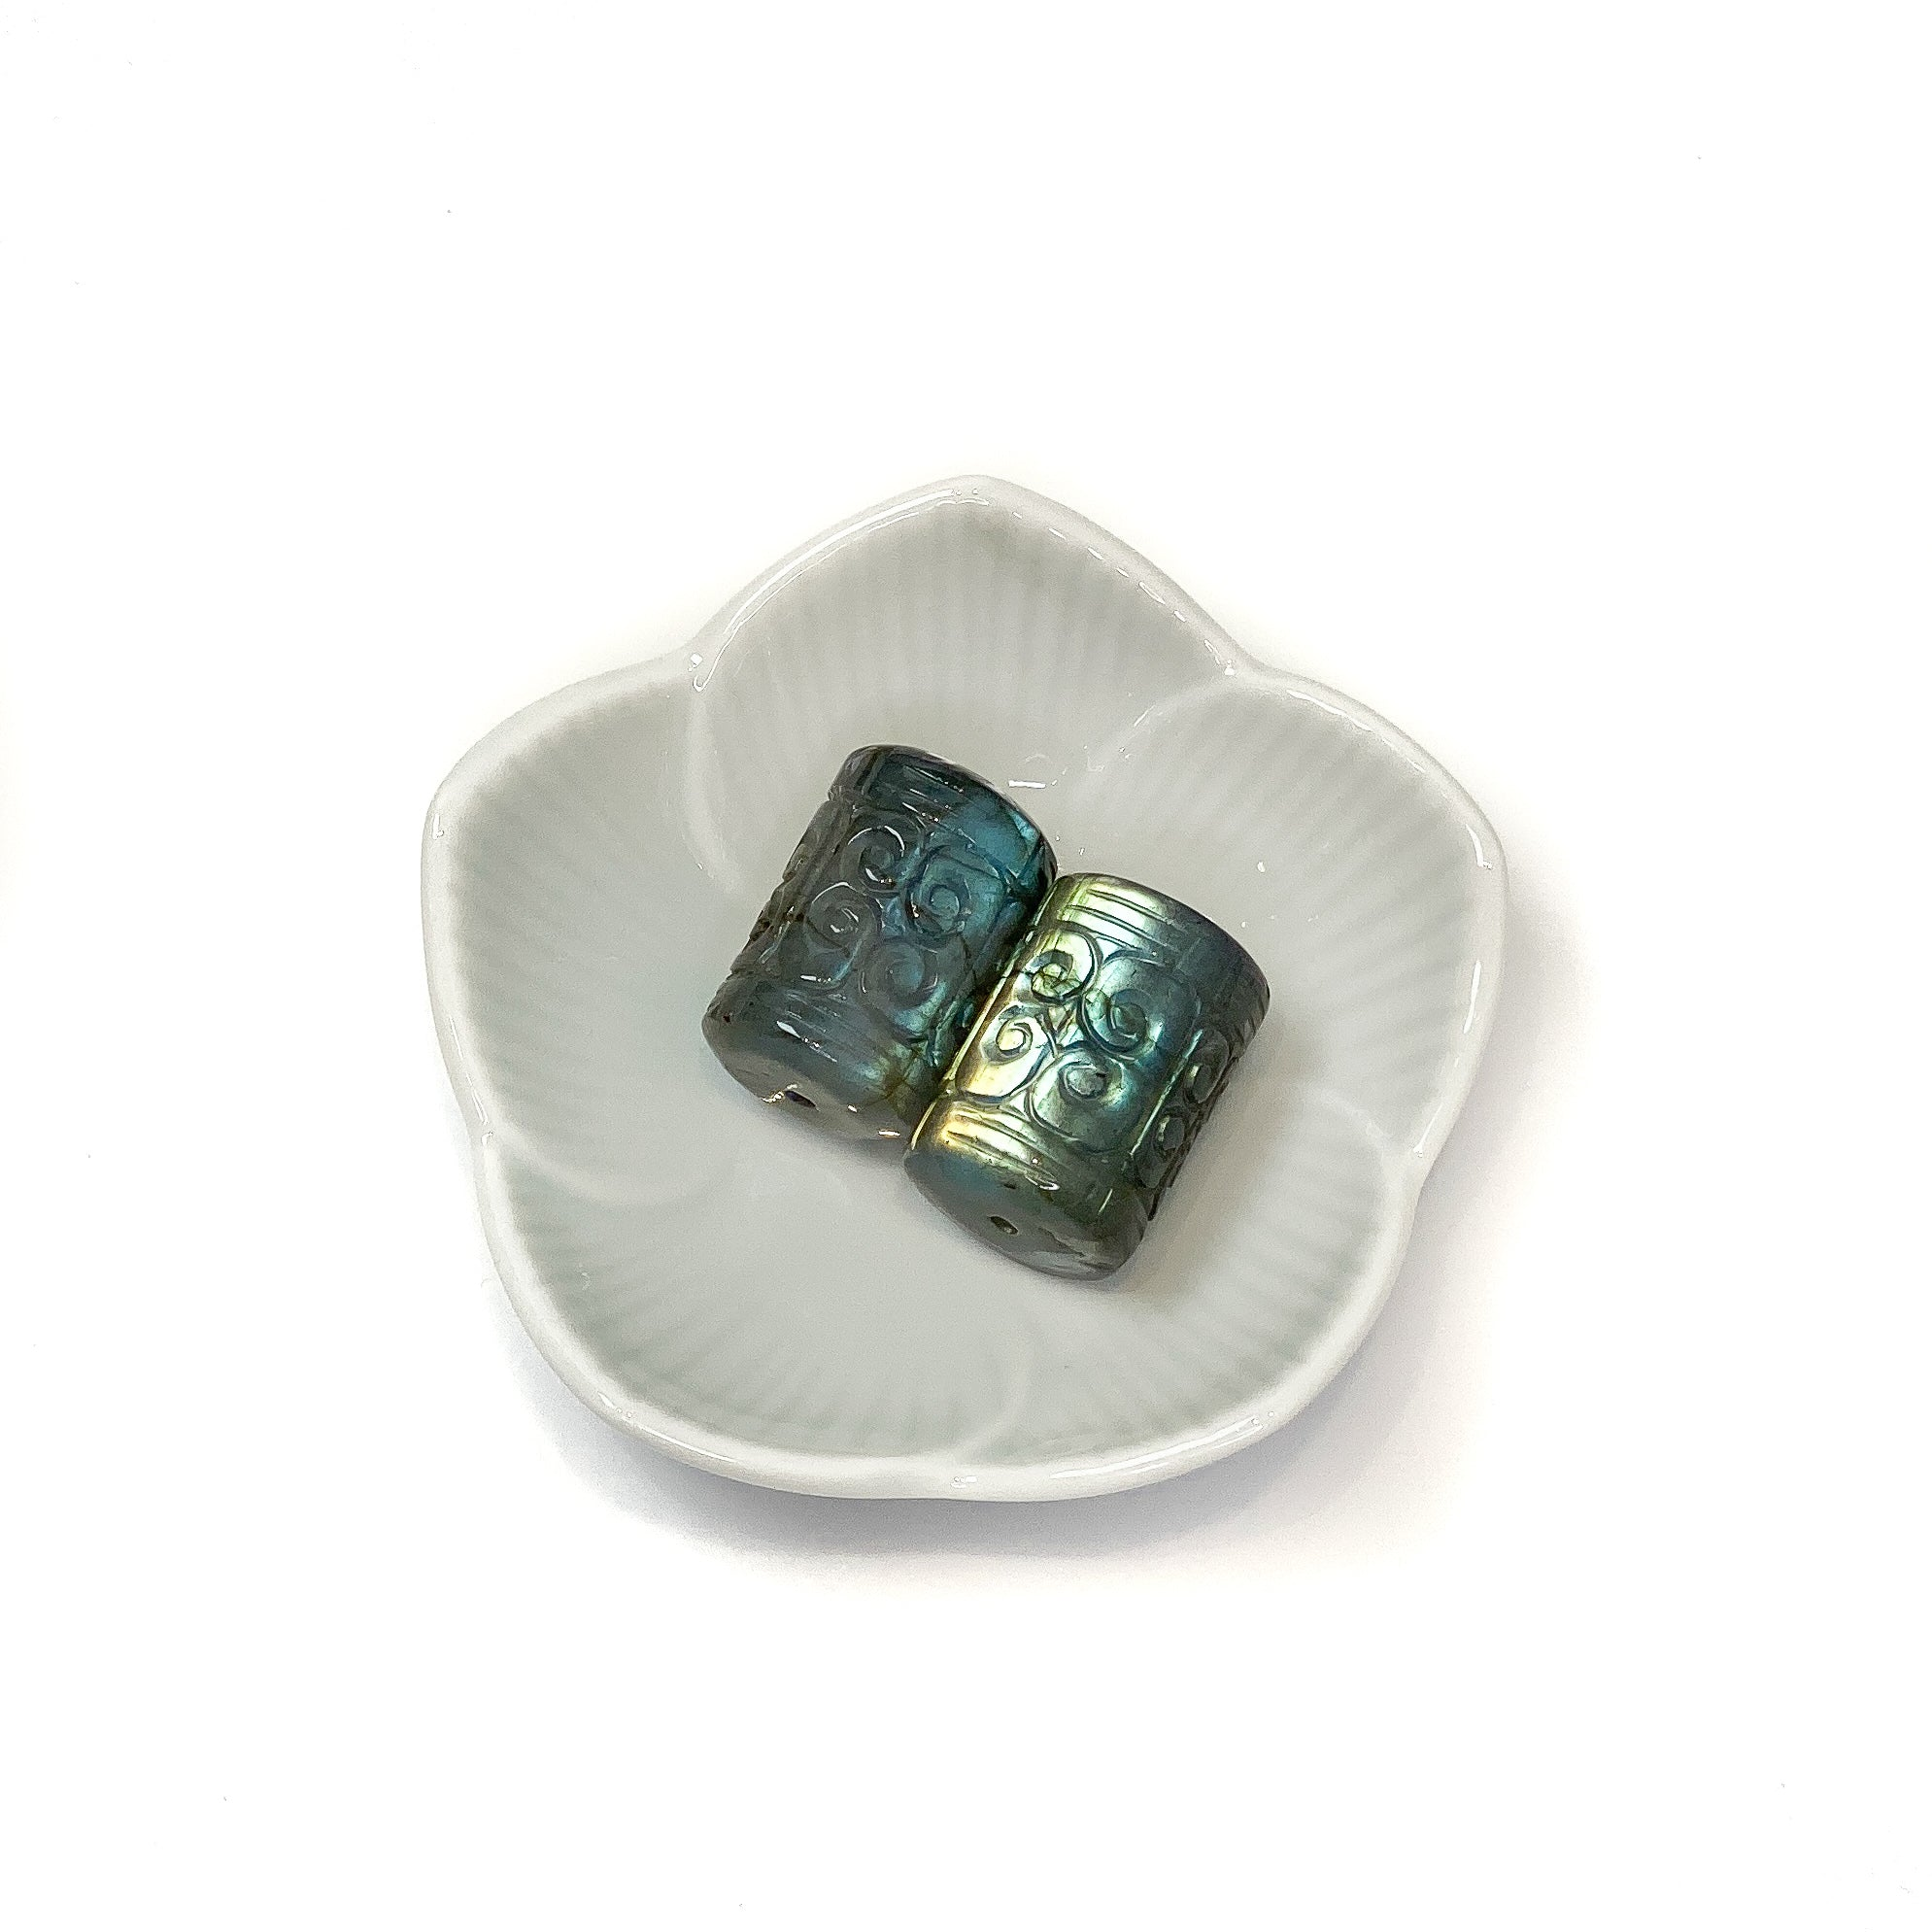 Labradorite Bead - 23mm Cloud Carved Cylinder Focal